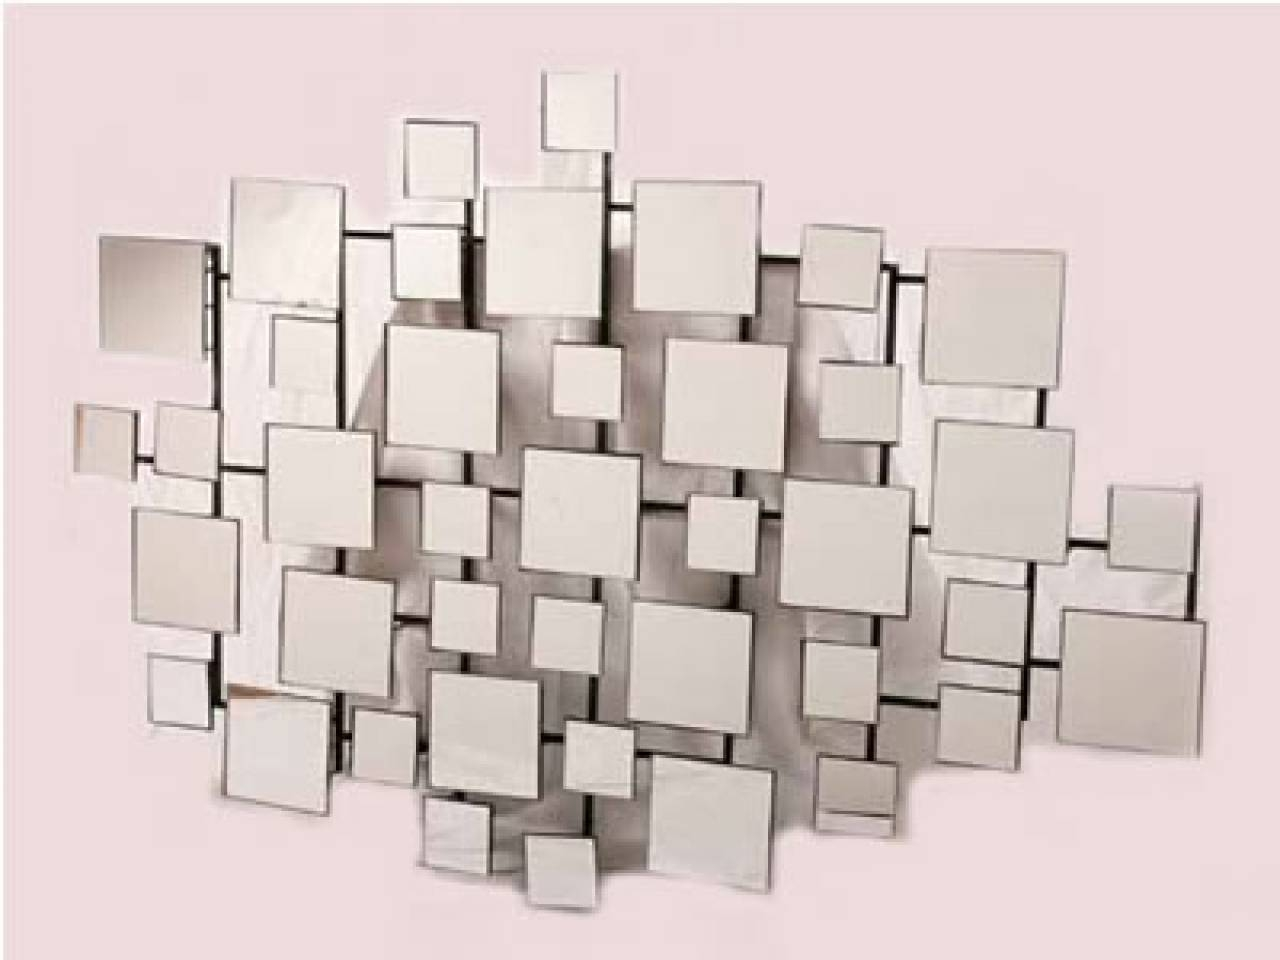 Wall Art Designs: Mirrored Wall Art Geometric Mirror Wall Art Inside Best And Newest Fretwork Wall Art (View 23 of 25)